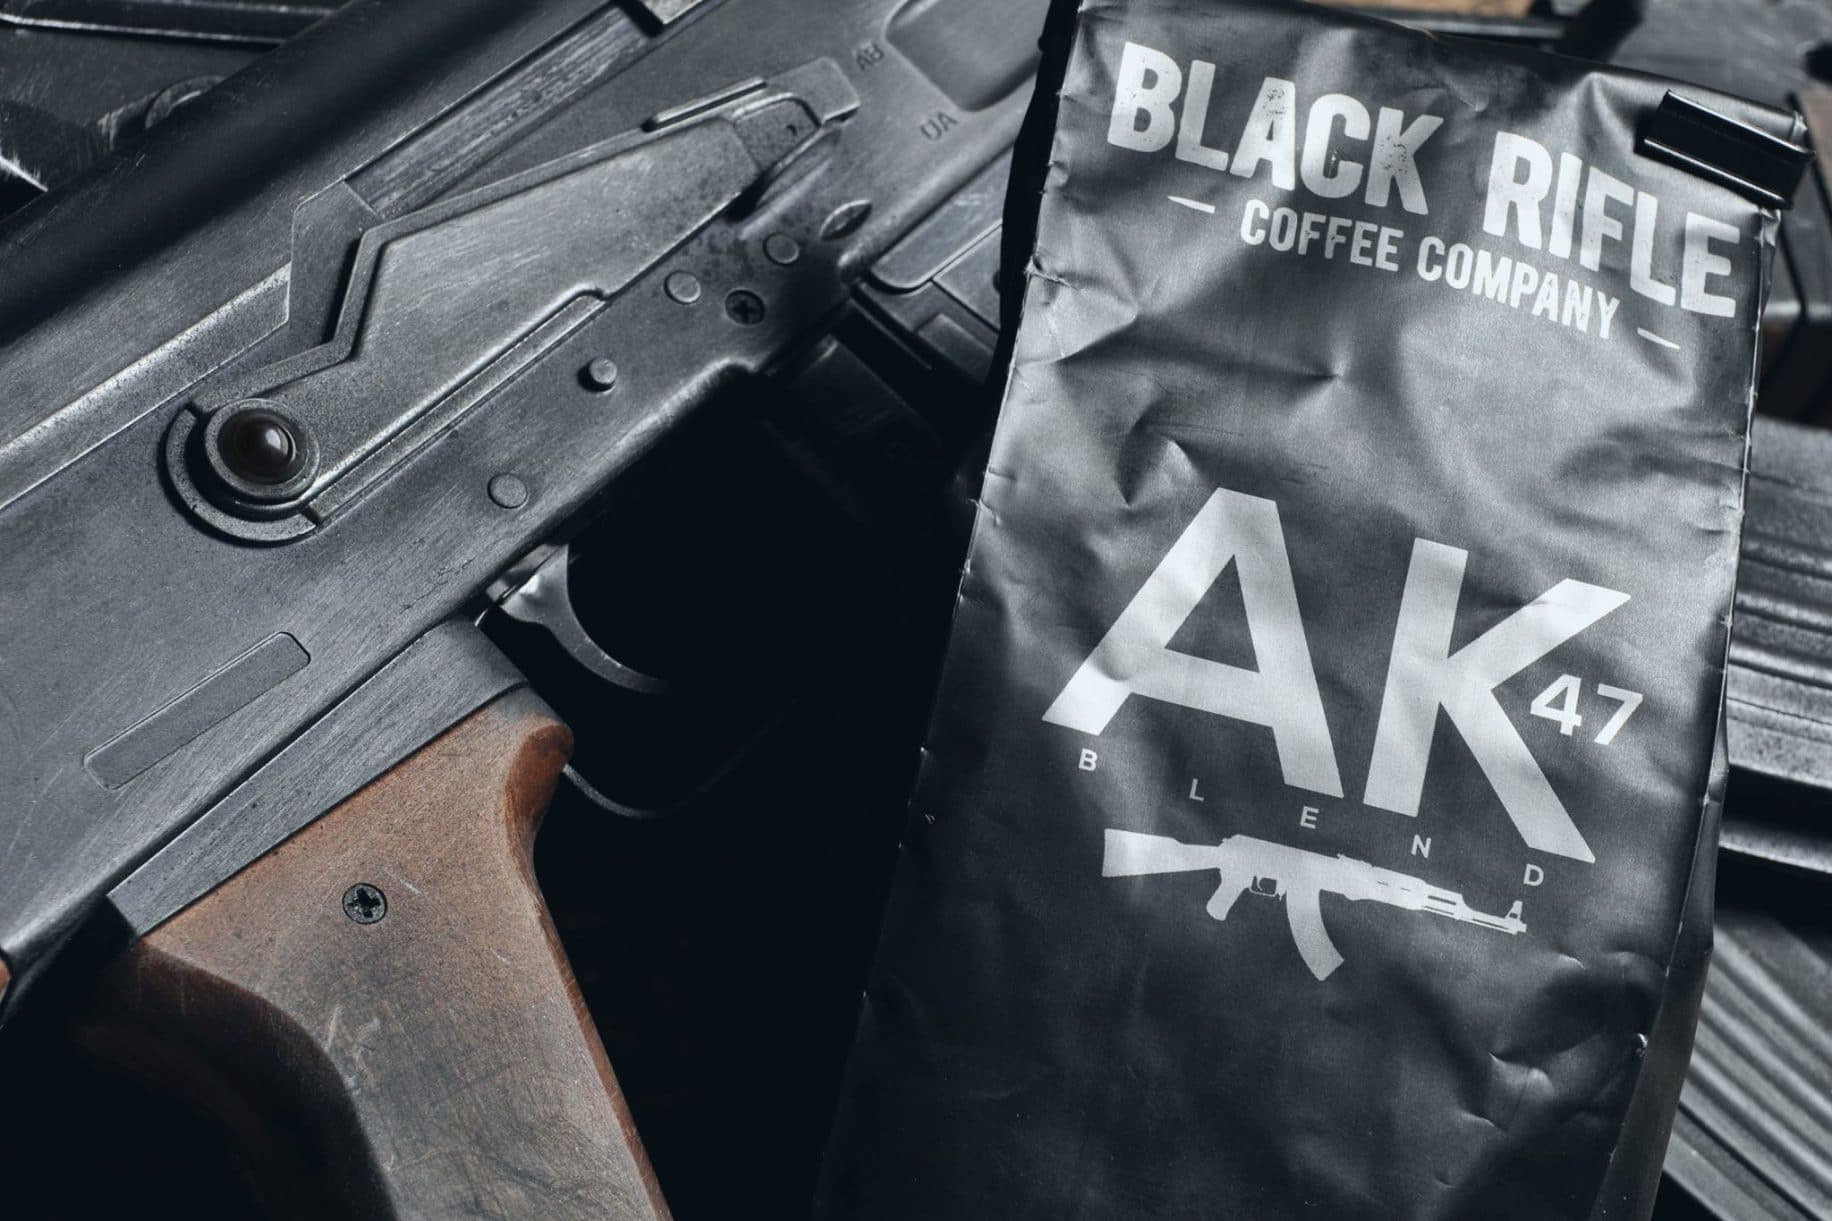 Video Vet Owned Black Rifle Coffee Denies Kyle Rittenhouse Sponsorship After Picture Of Rittenhouse Wearing Their Shirt Goes Viral American Military Newsamerican Military News